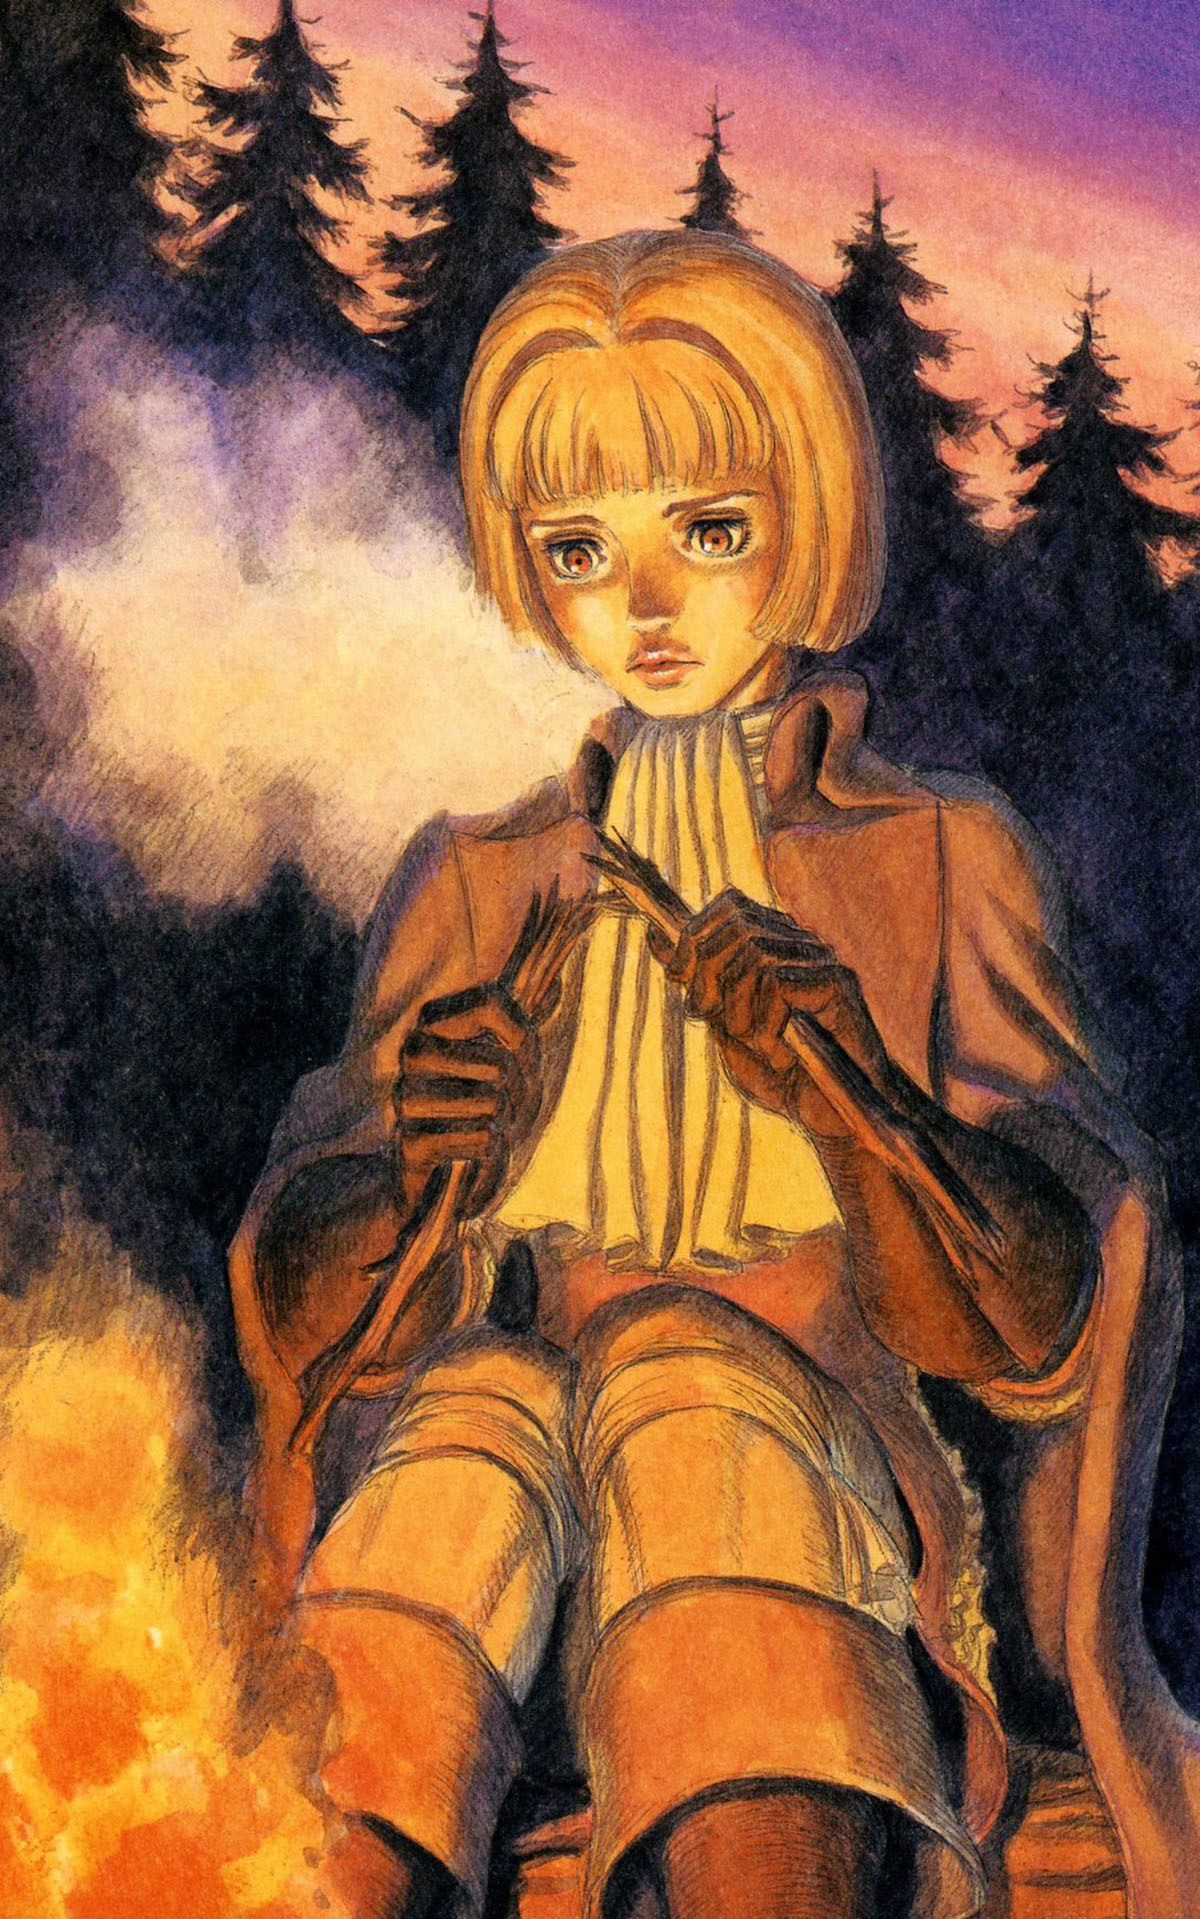 berserk farnese Anime HD Wallpaper